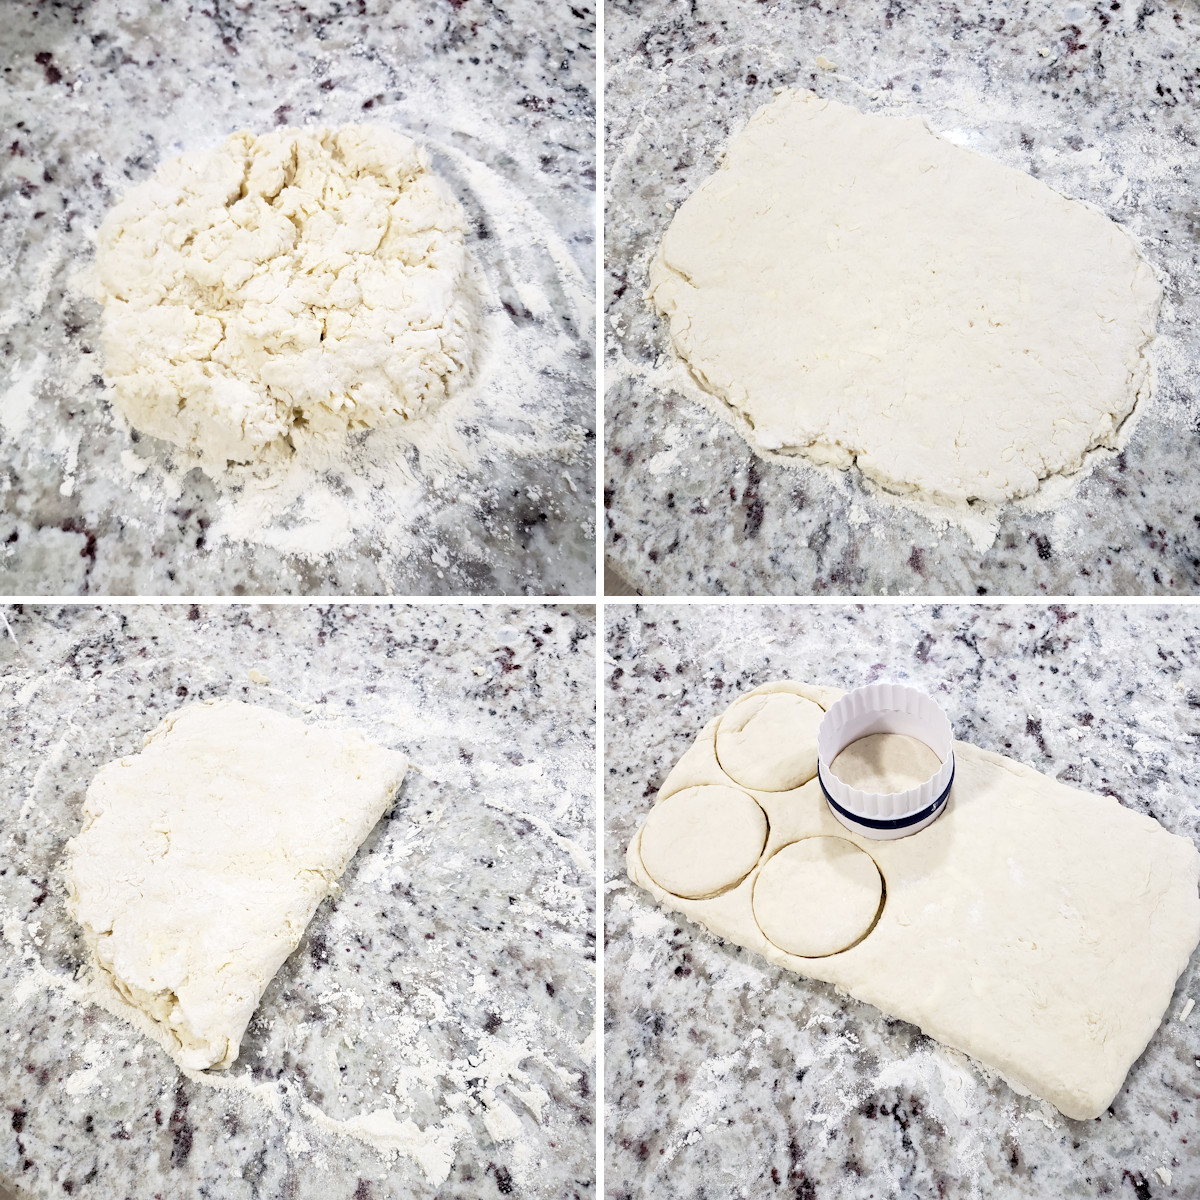 Makin and folding biscuit dough.